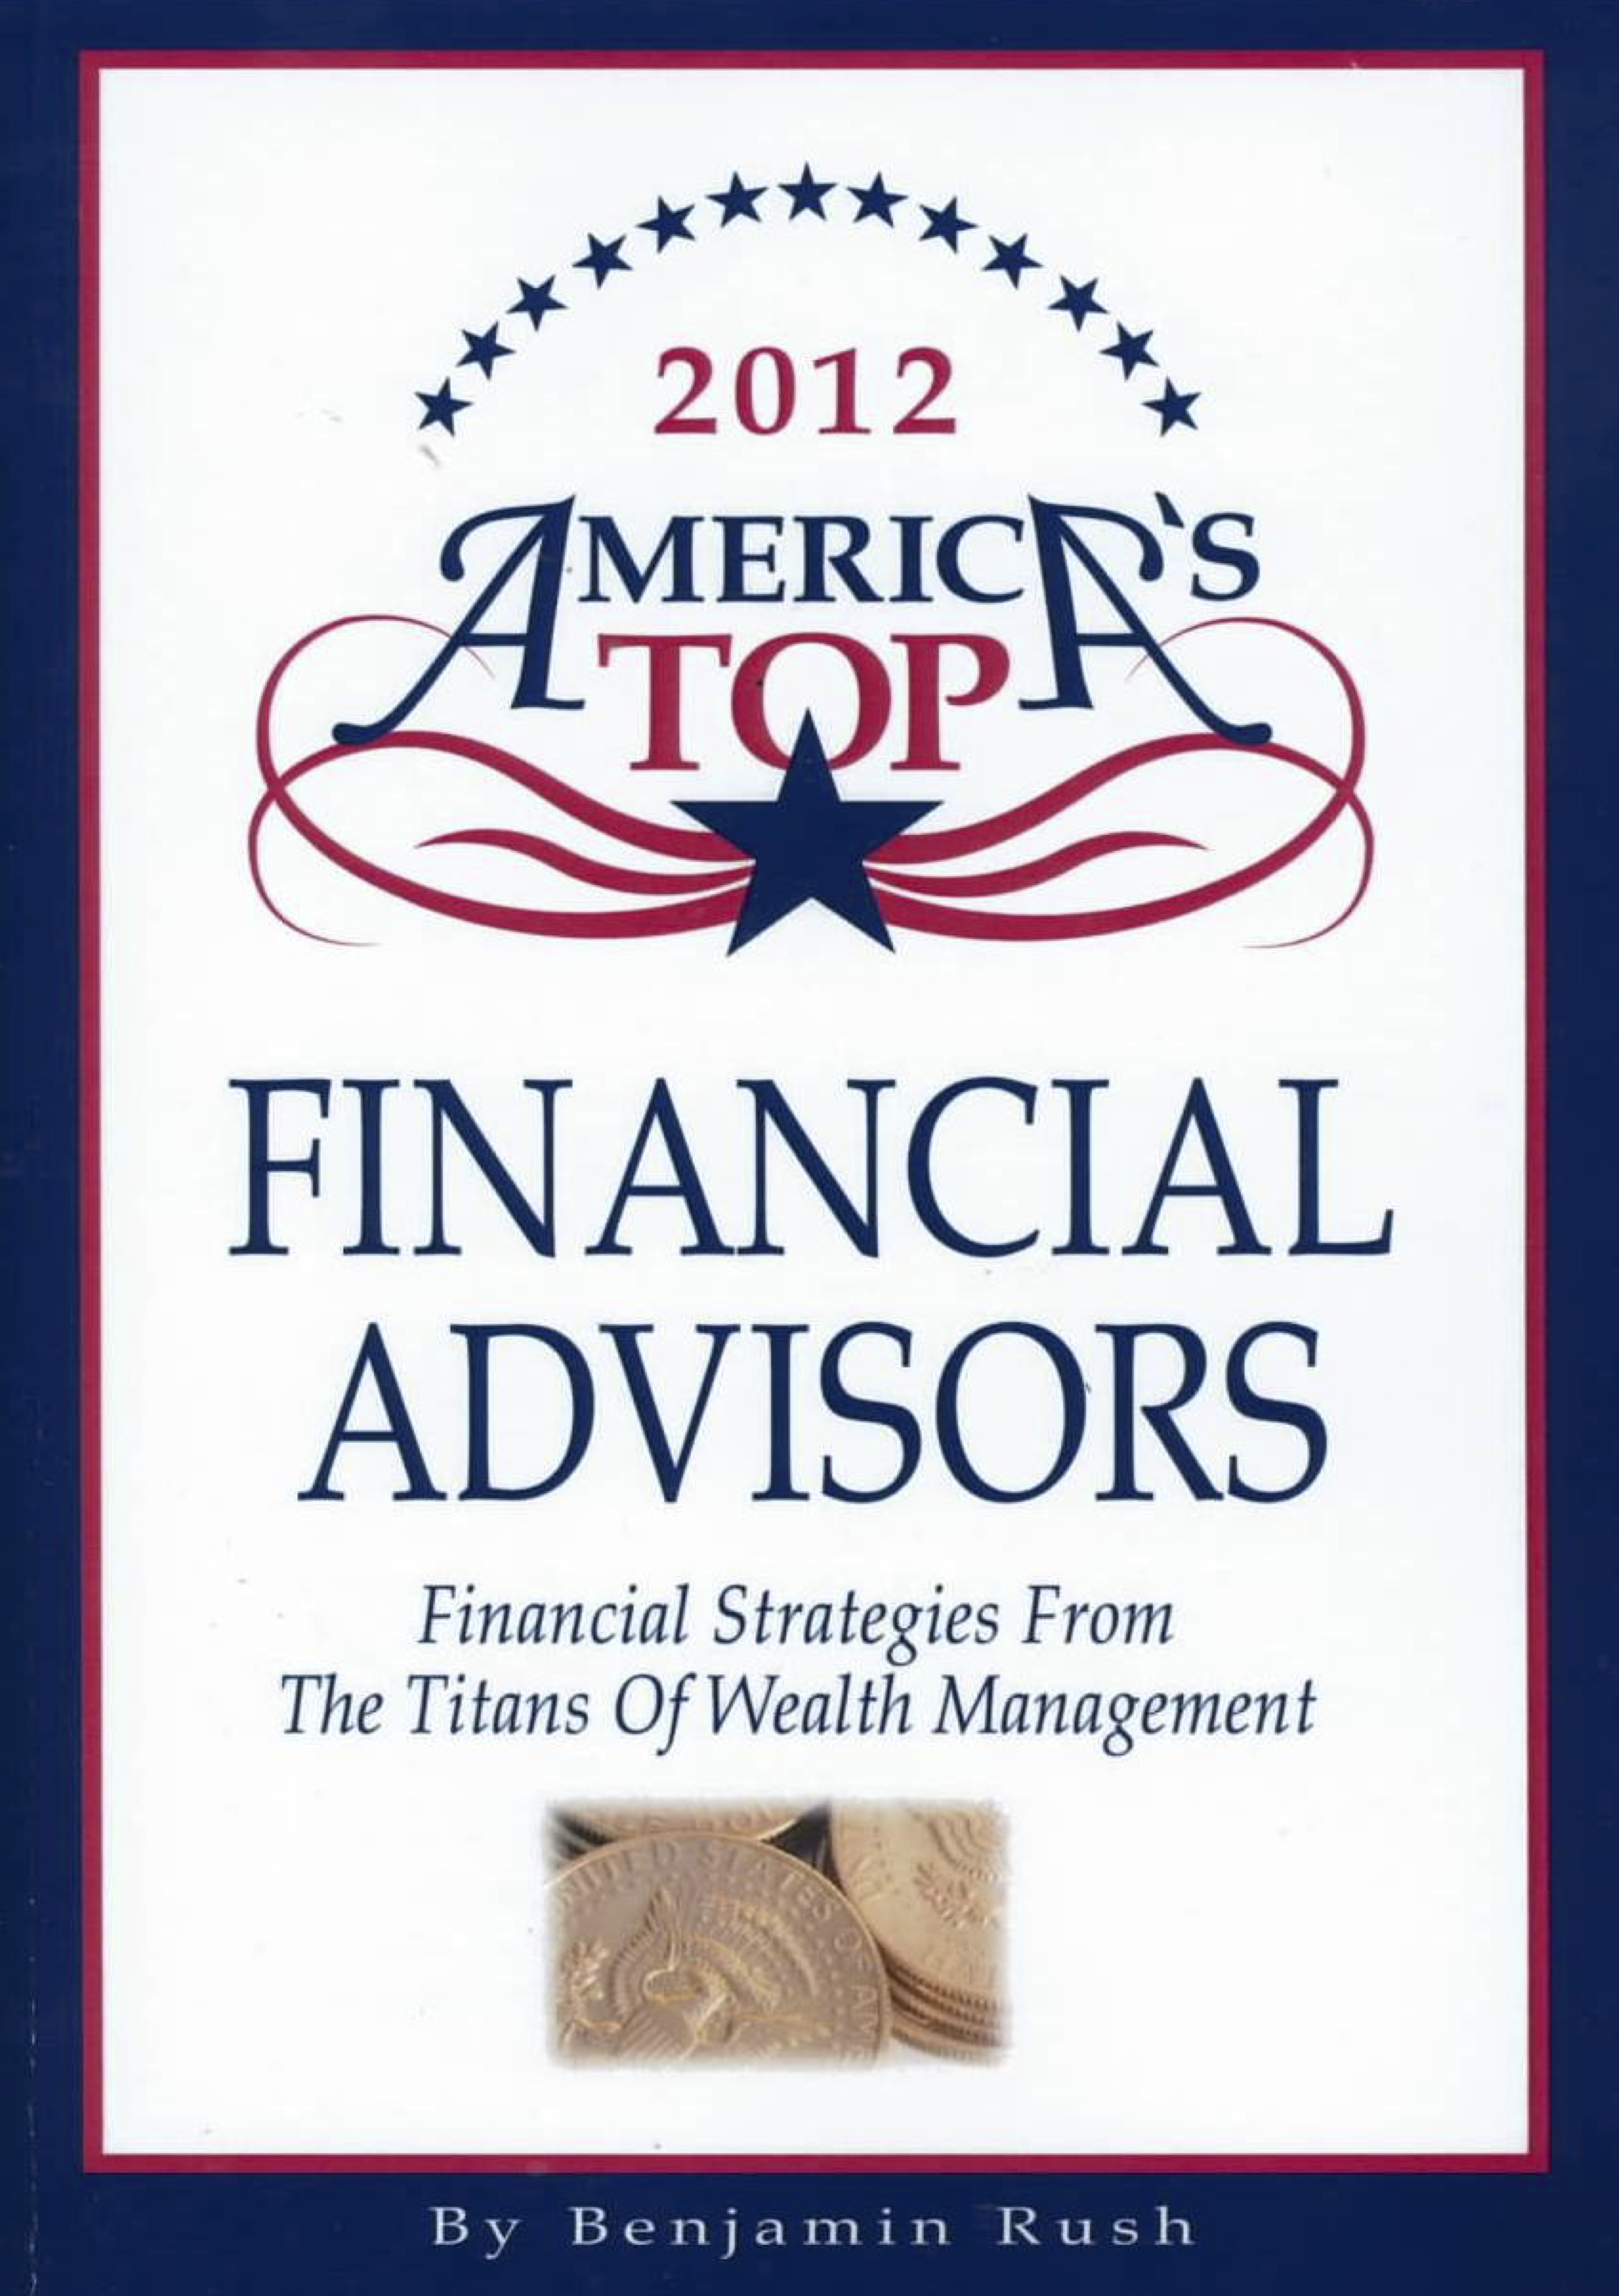 Investec - Financial Strategies from the Titans of Wealth Management: America's Top Financial Advisors, 2012